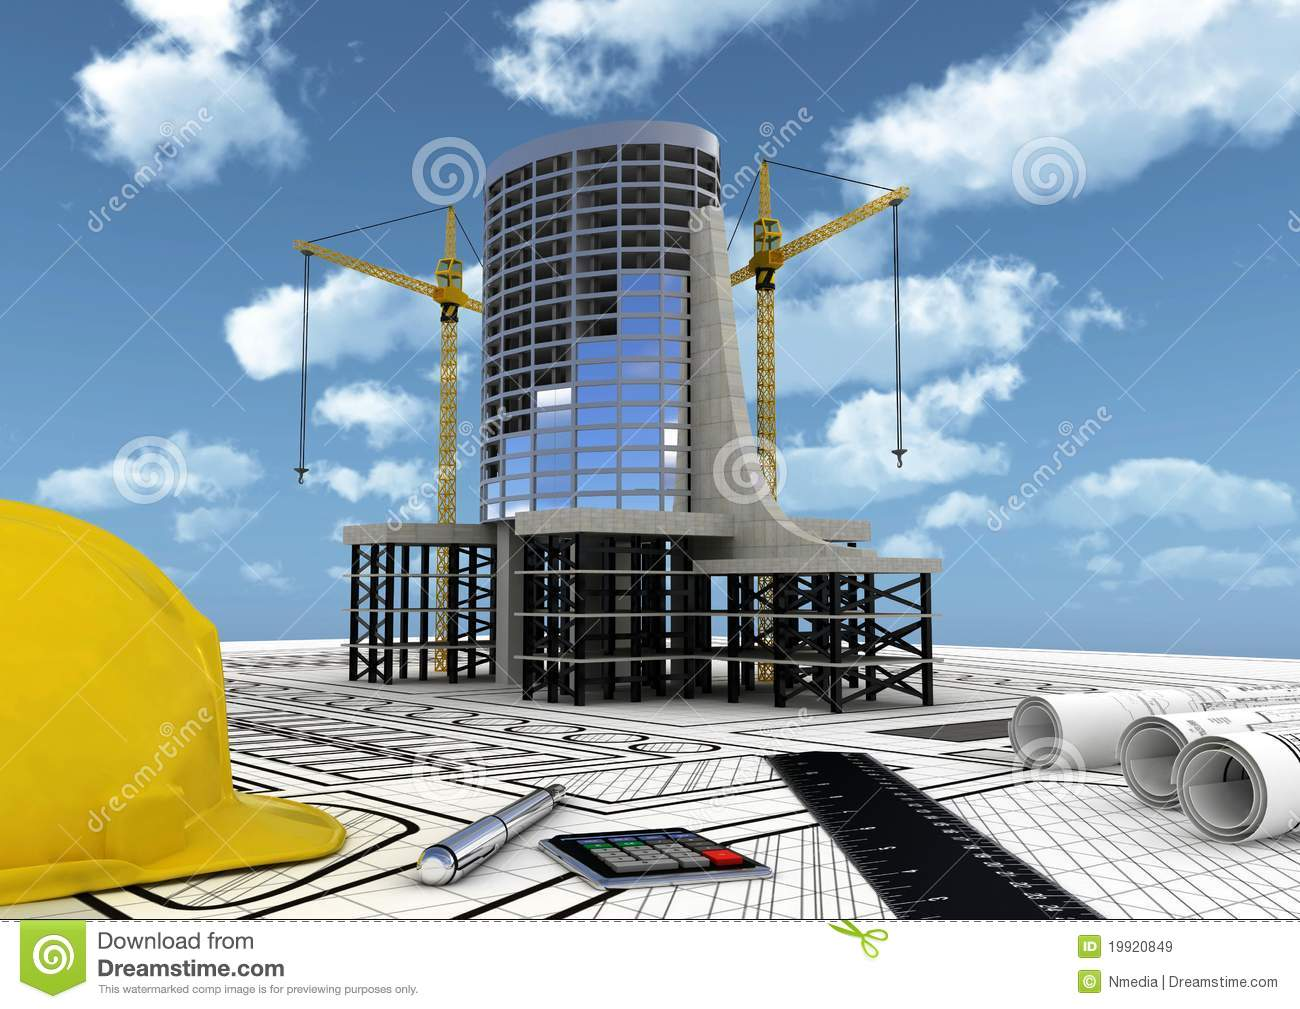 Building construction concept royalty free stock images for Building construction